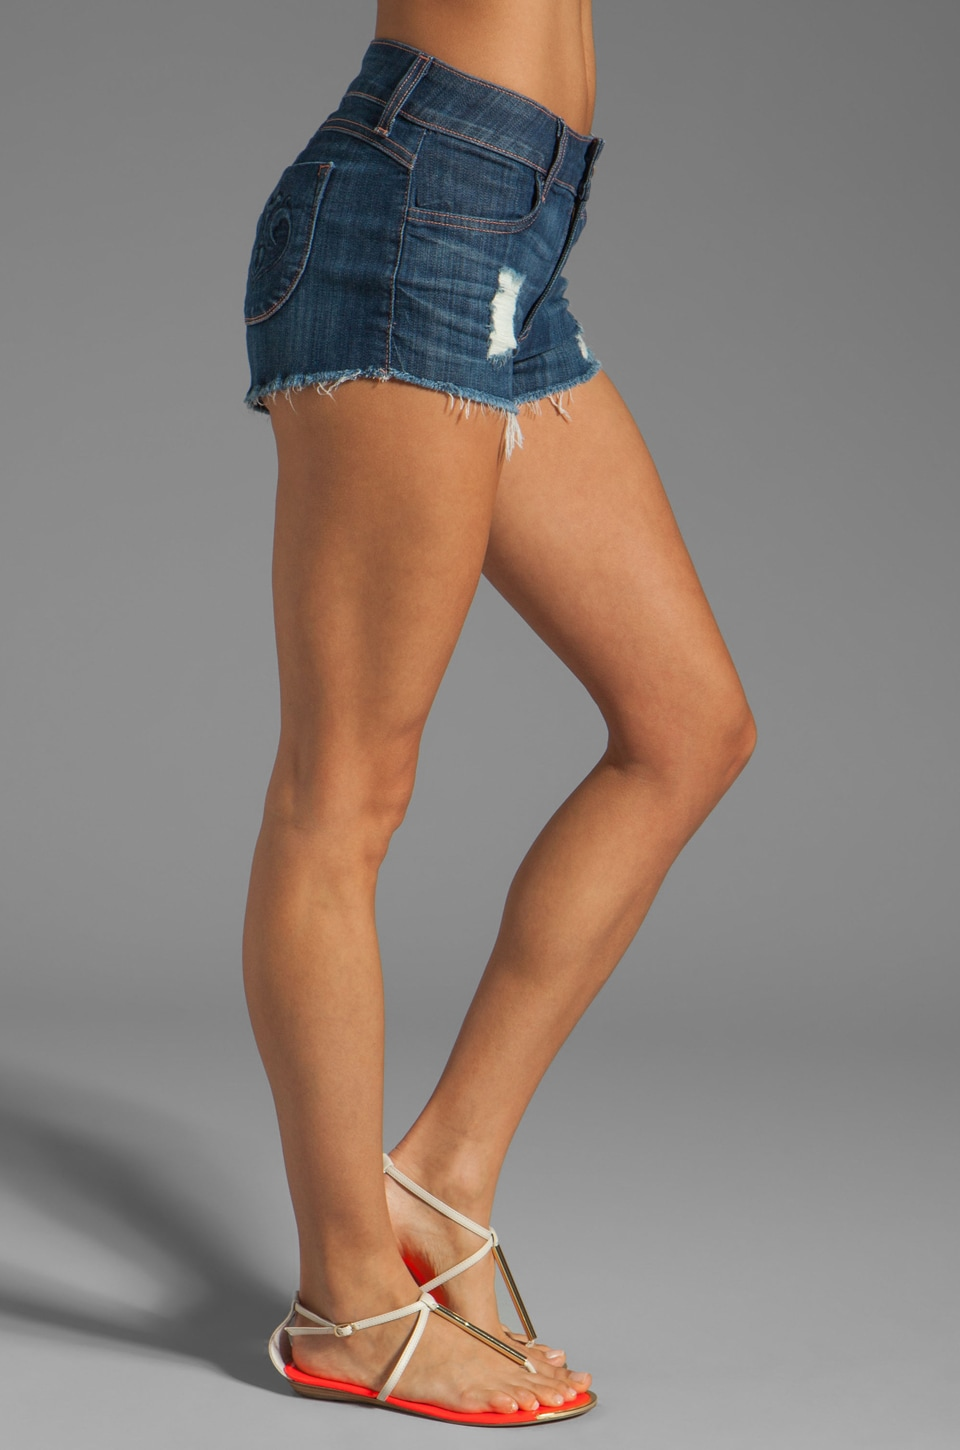 Siwy Jean Maud Cut-Off Shorts in Always With You